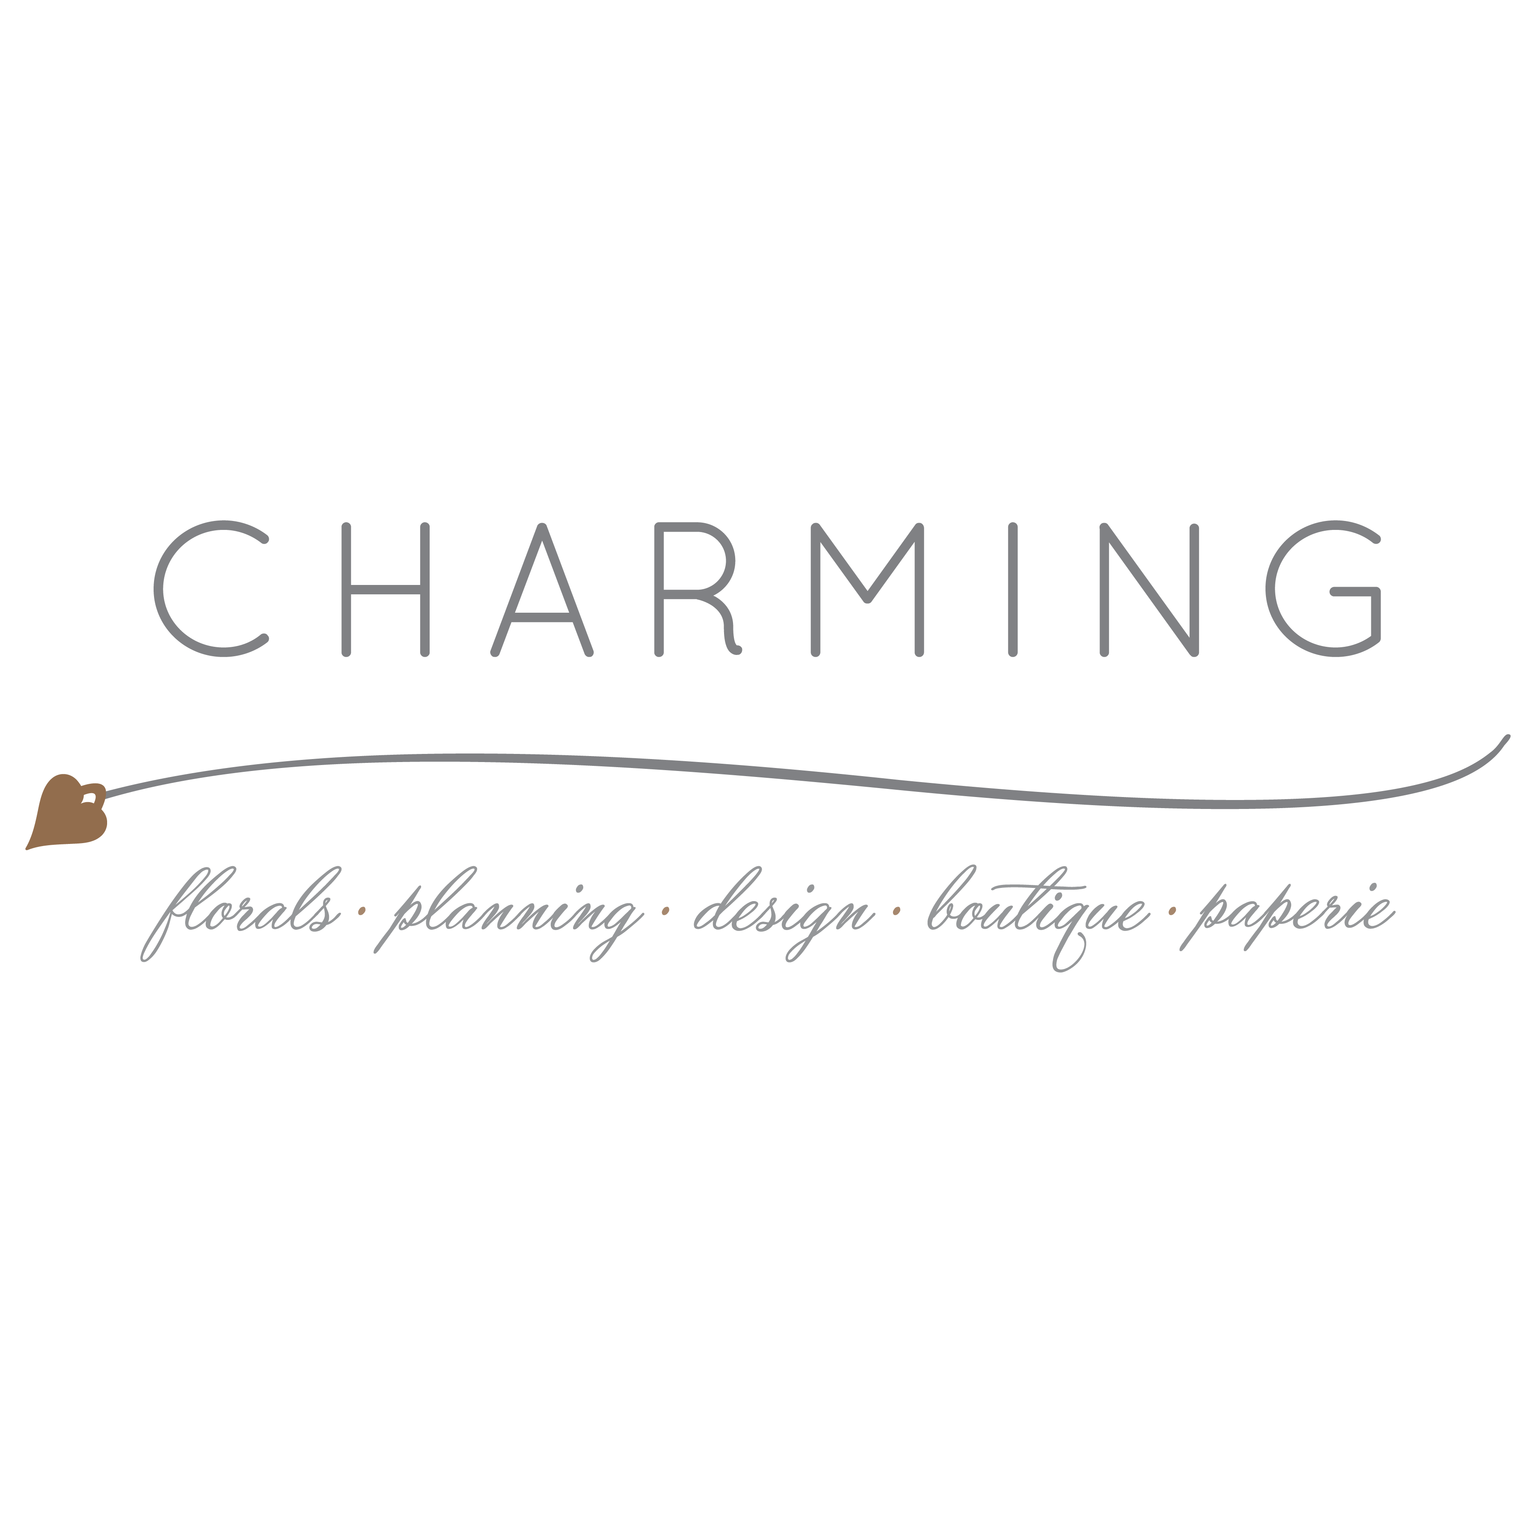 GT Open House - Charming Events Company